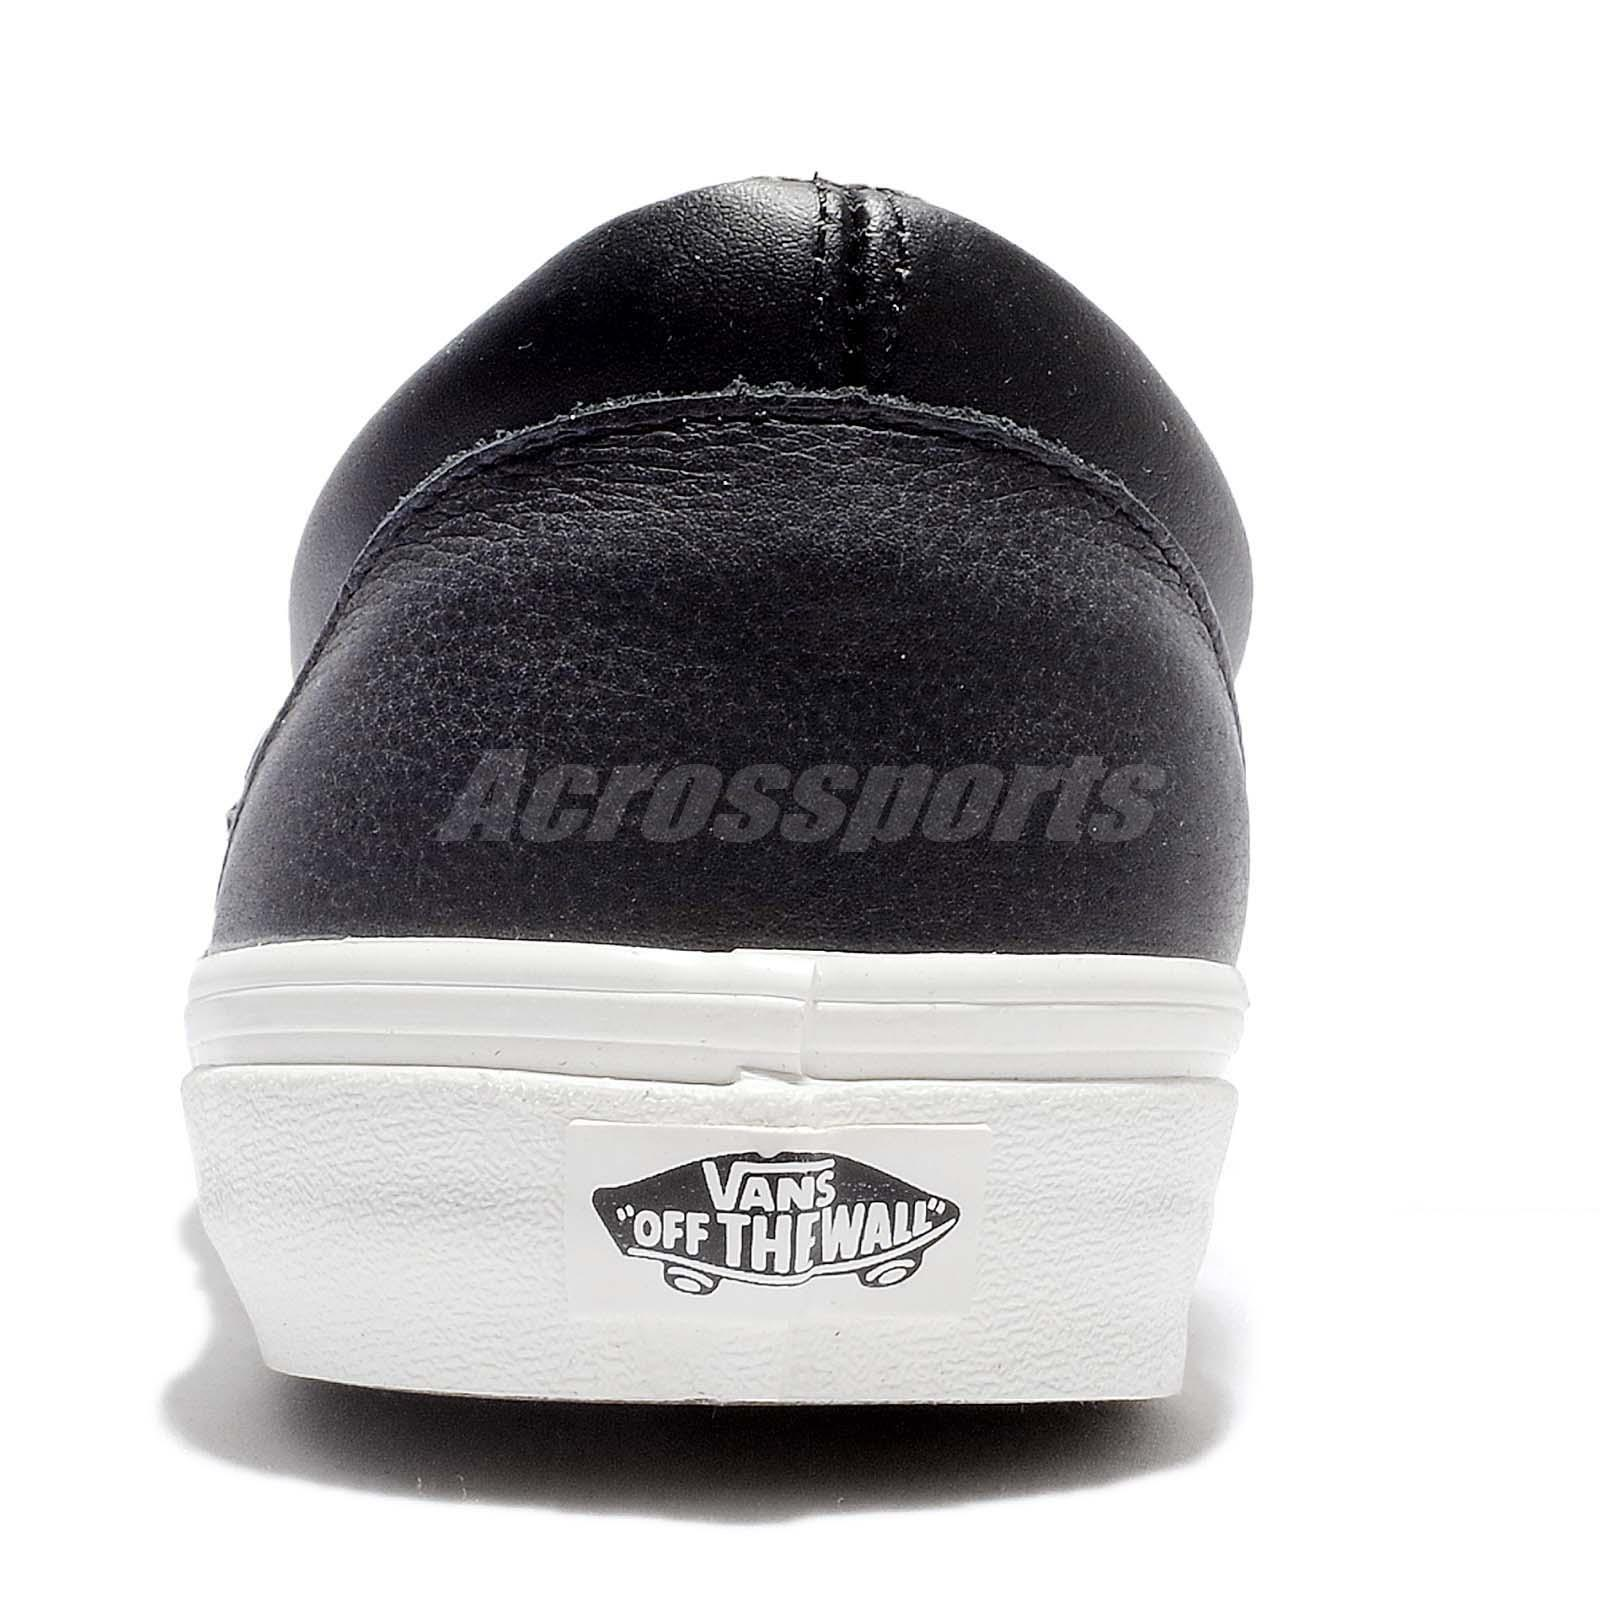 b84a02a2c8668e Vans Classic Slip-On Black White Leather Men Casual Shoes Sneakers ...